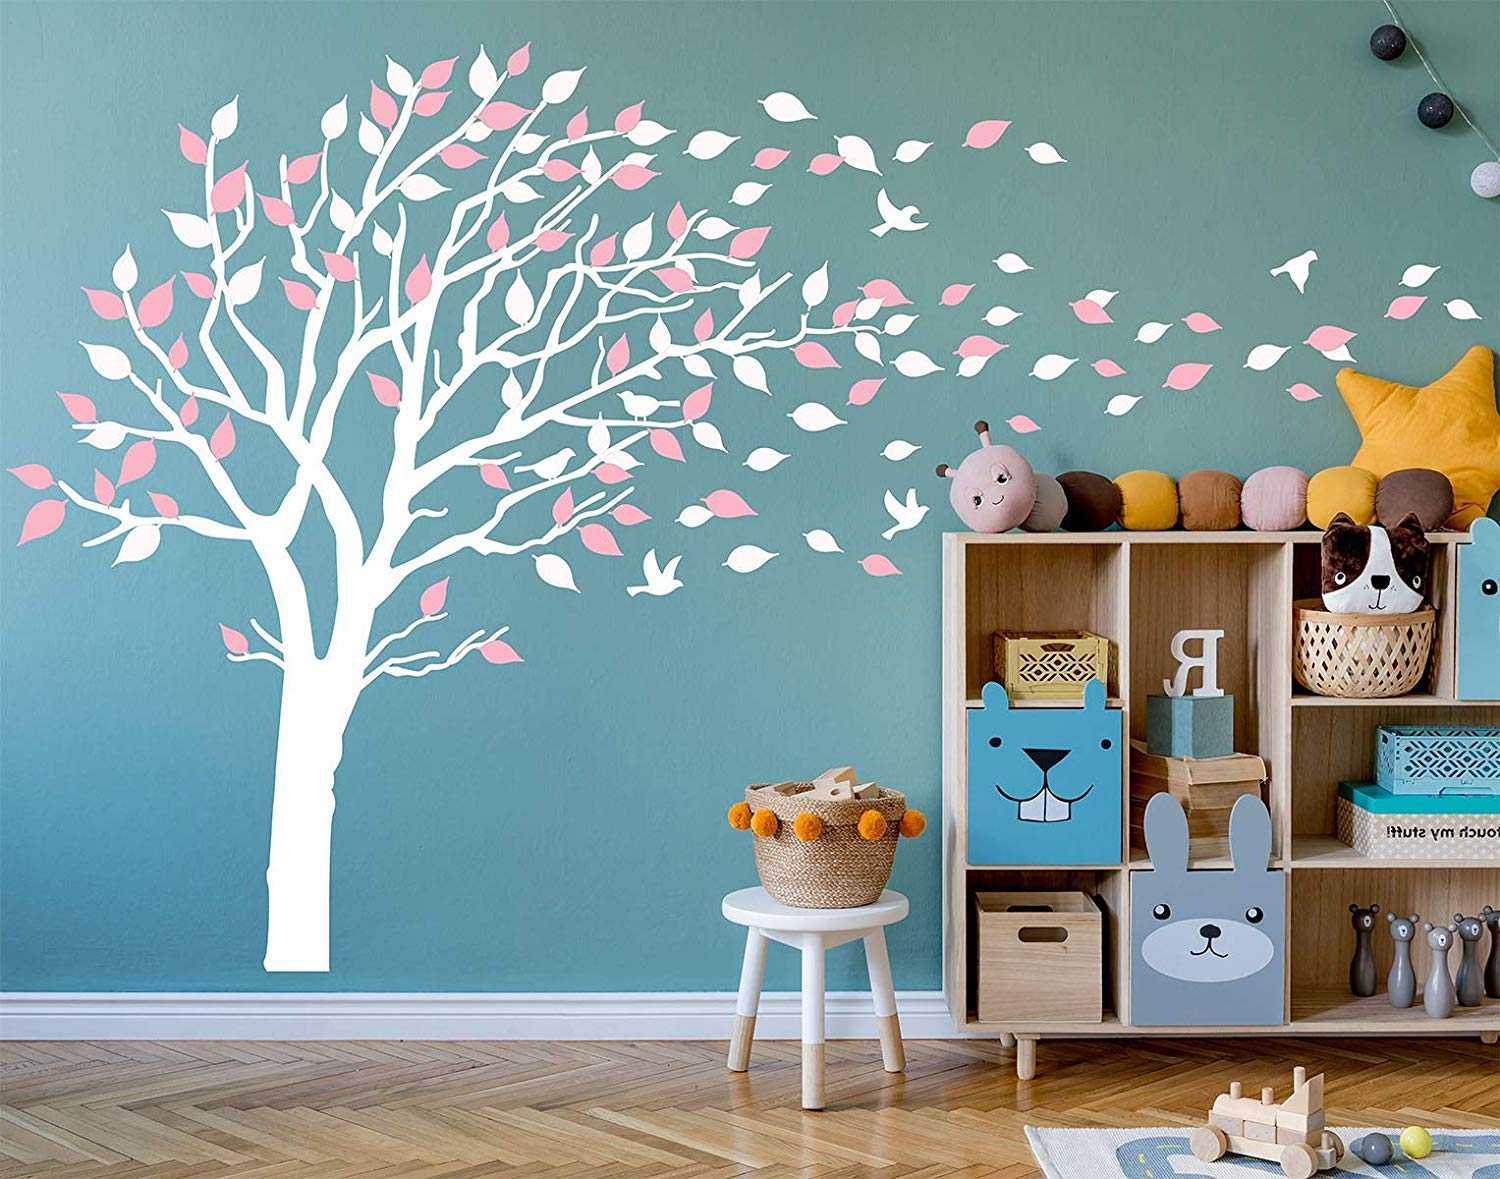 AIYANG Blossom Tree Wall Decals Flying Birds Wall Stickers Removable Vinyl Wall Art Wall Decorations for Kids Baby Nursery Room Decoration (White,Pink)